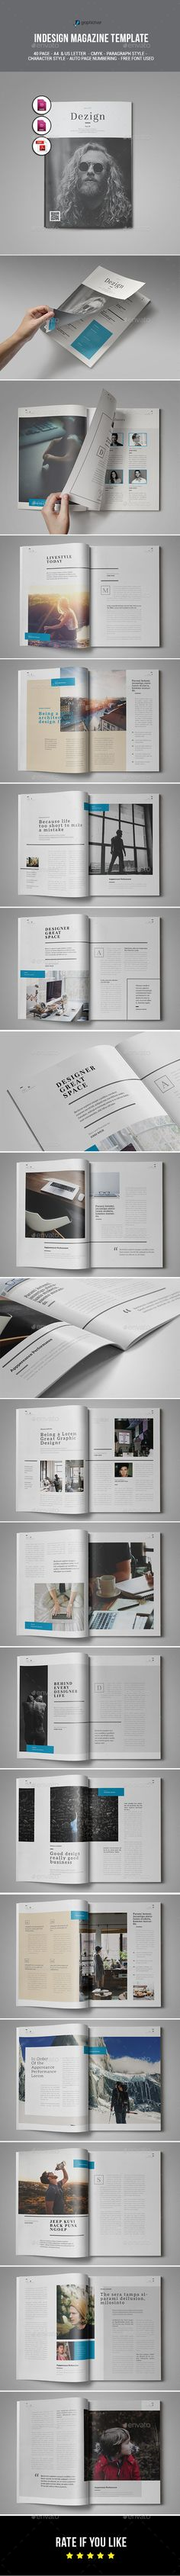 Magazine Template InDesign INDD - 40 Pages, A4 and US Letter Size